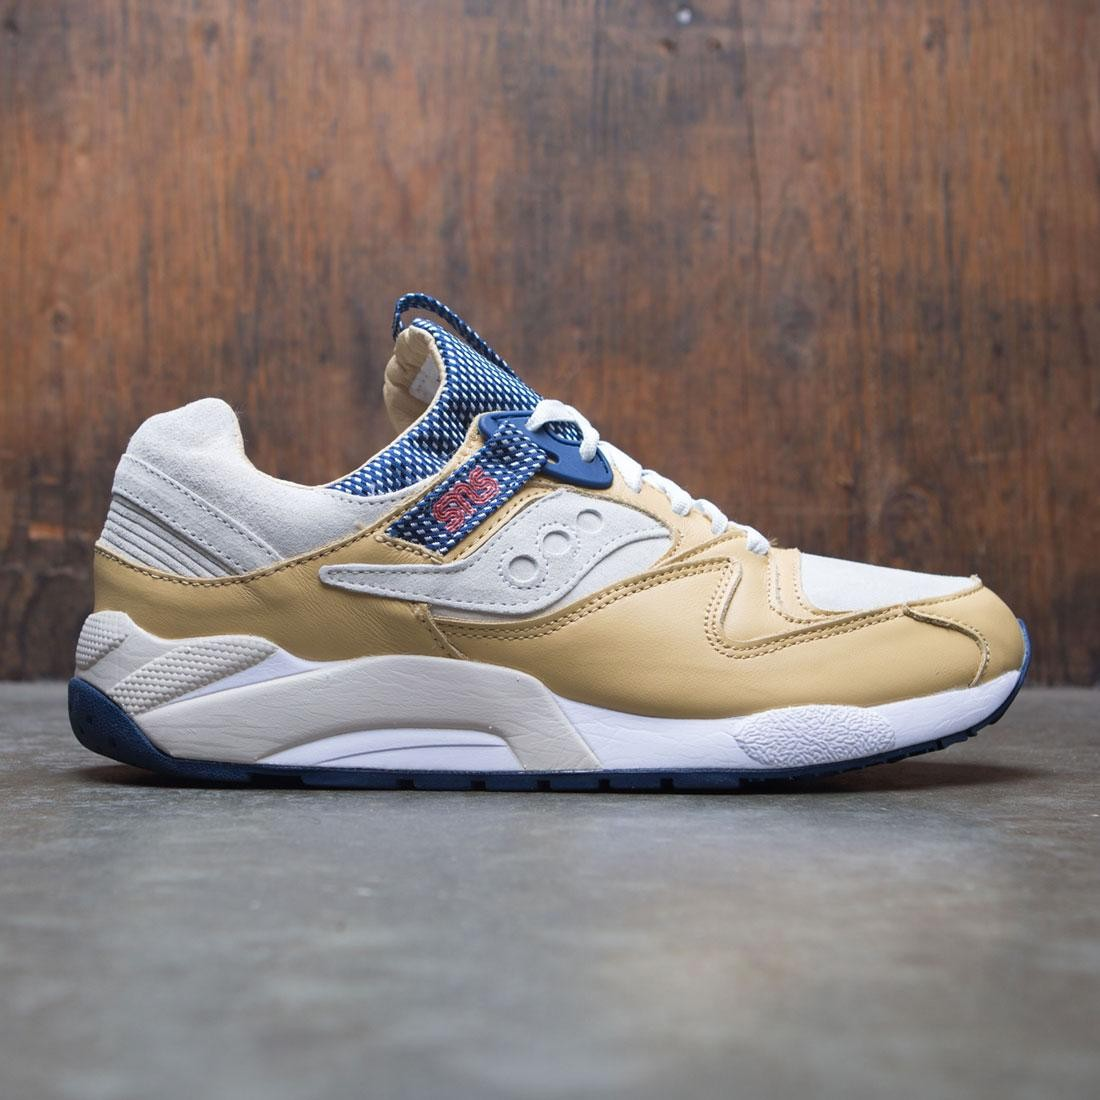 Saucony x SNS Men Grid 9000 - Business Class (tan / brown)